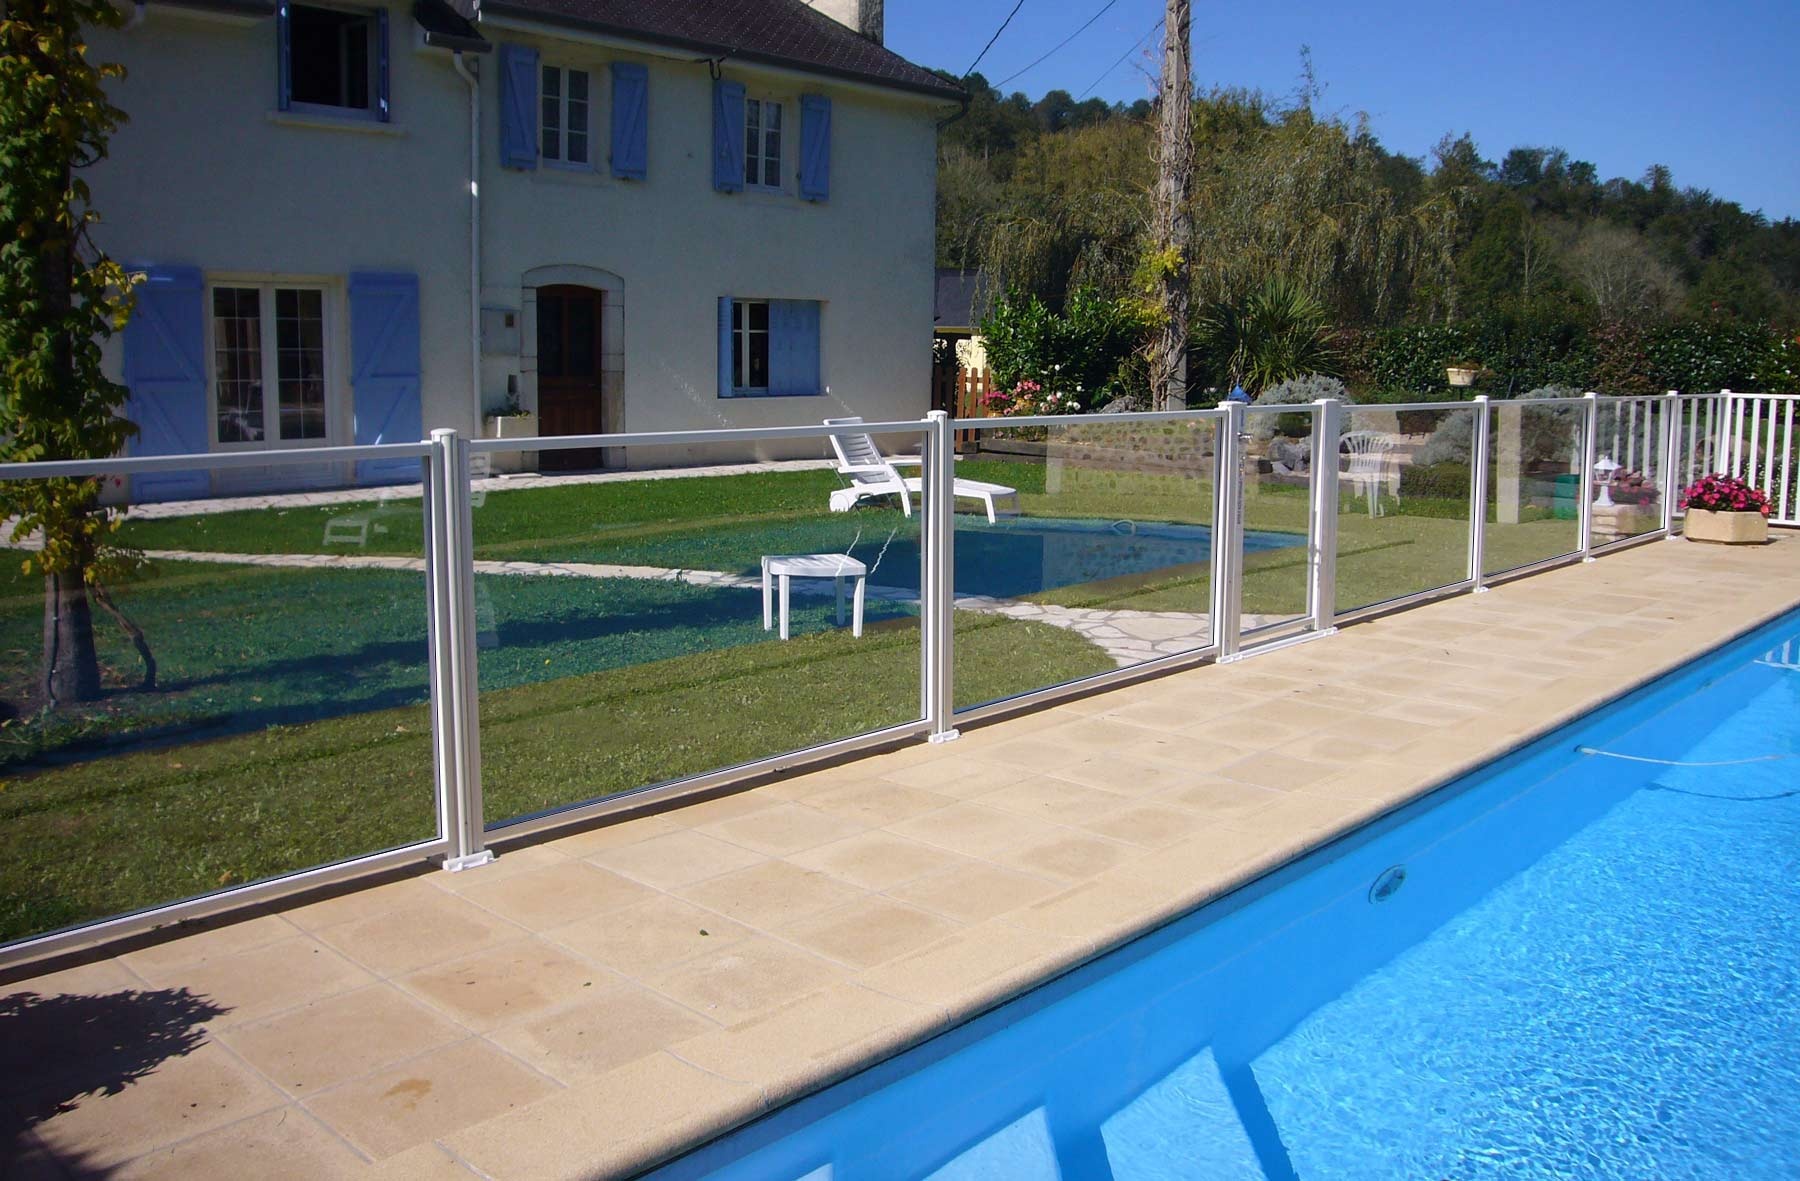 Les barri res en verre de protection d 39 atlantic barriere for Protection piscine